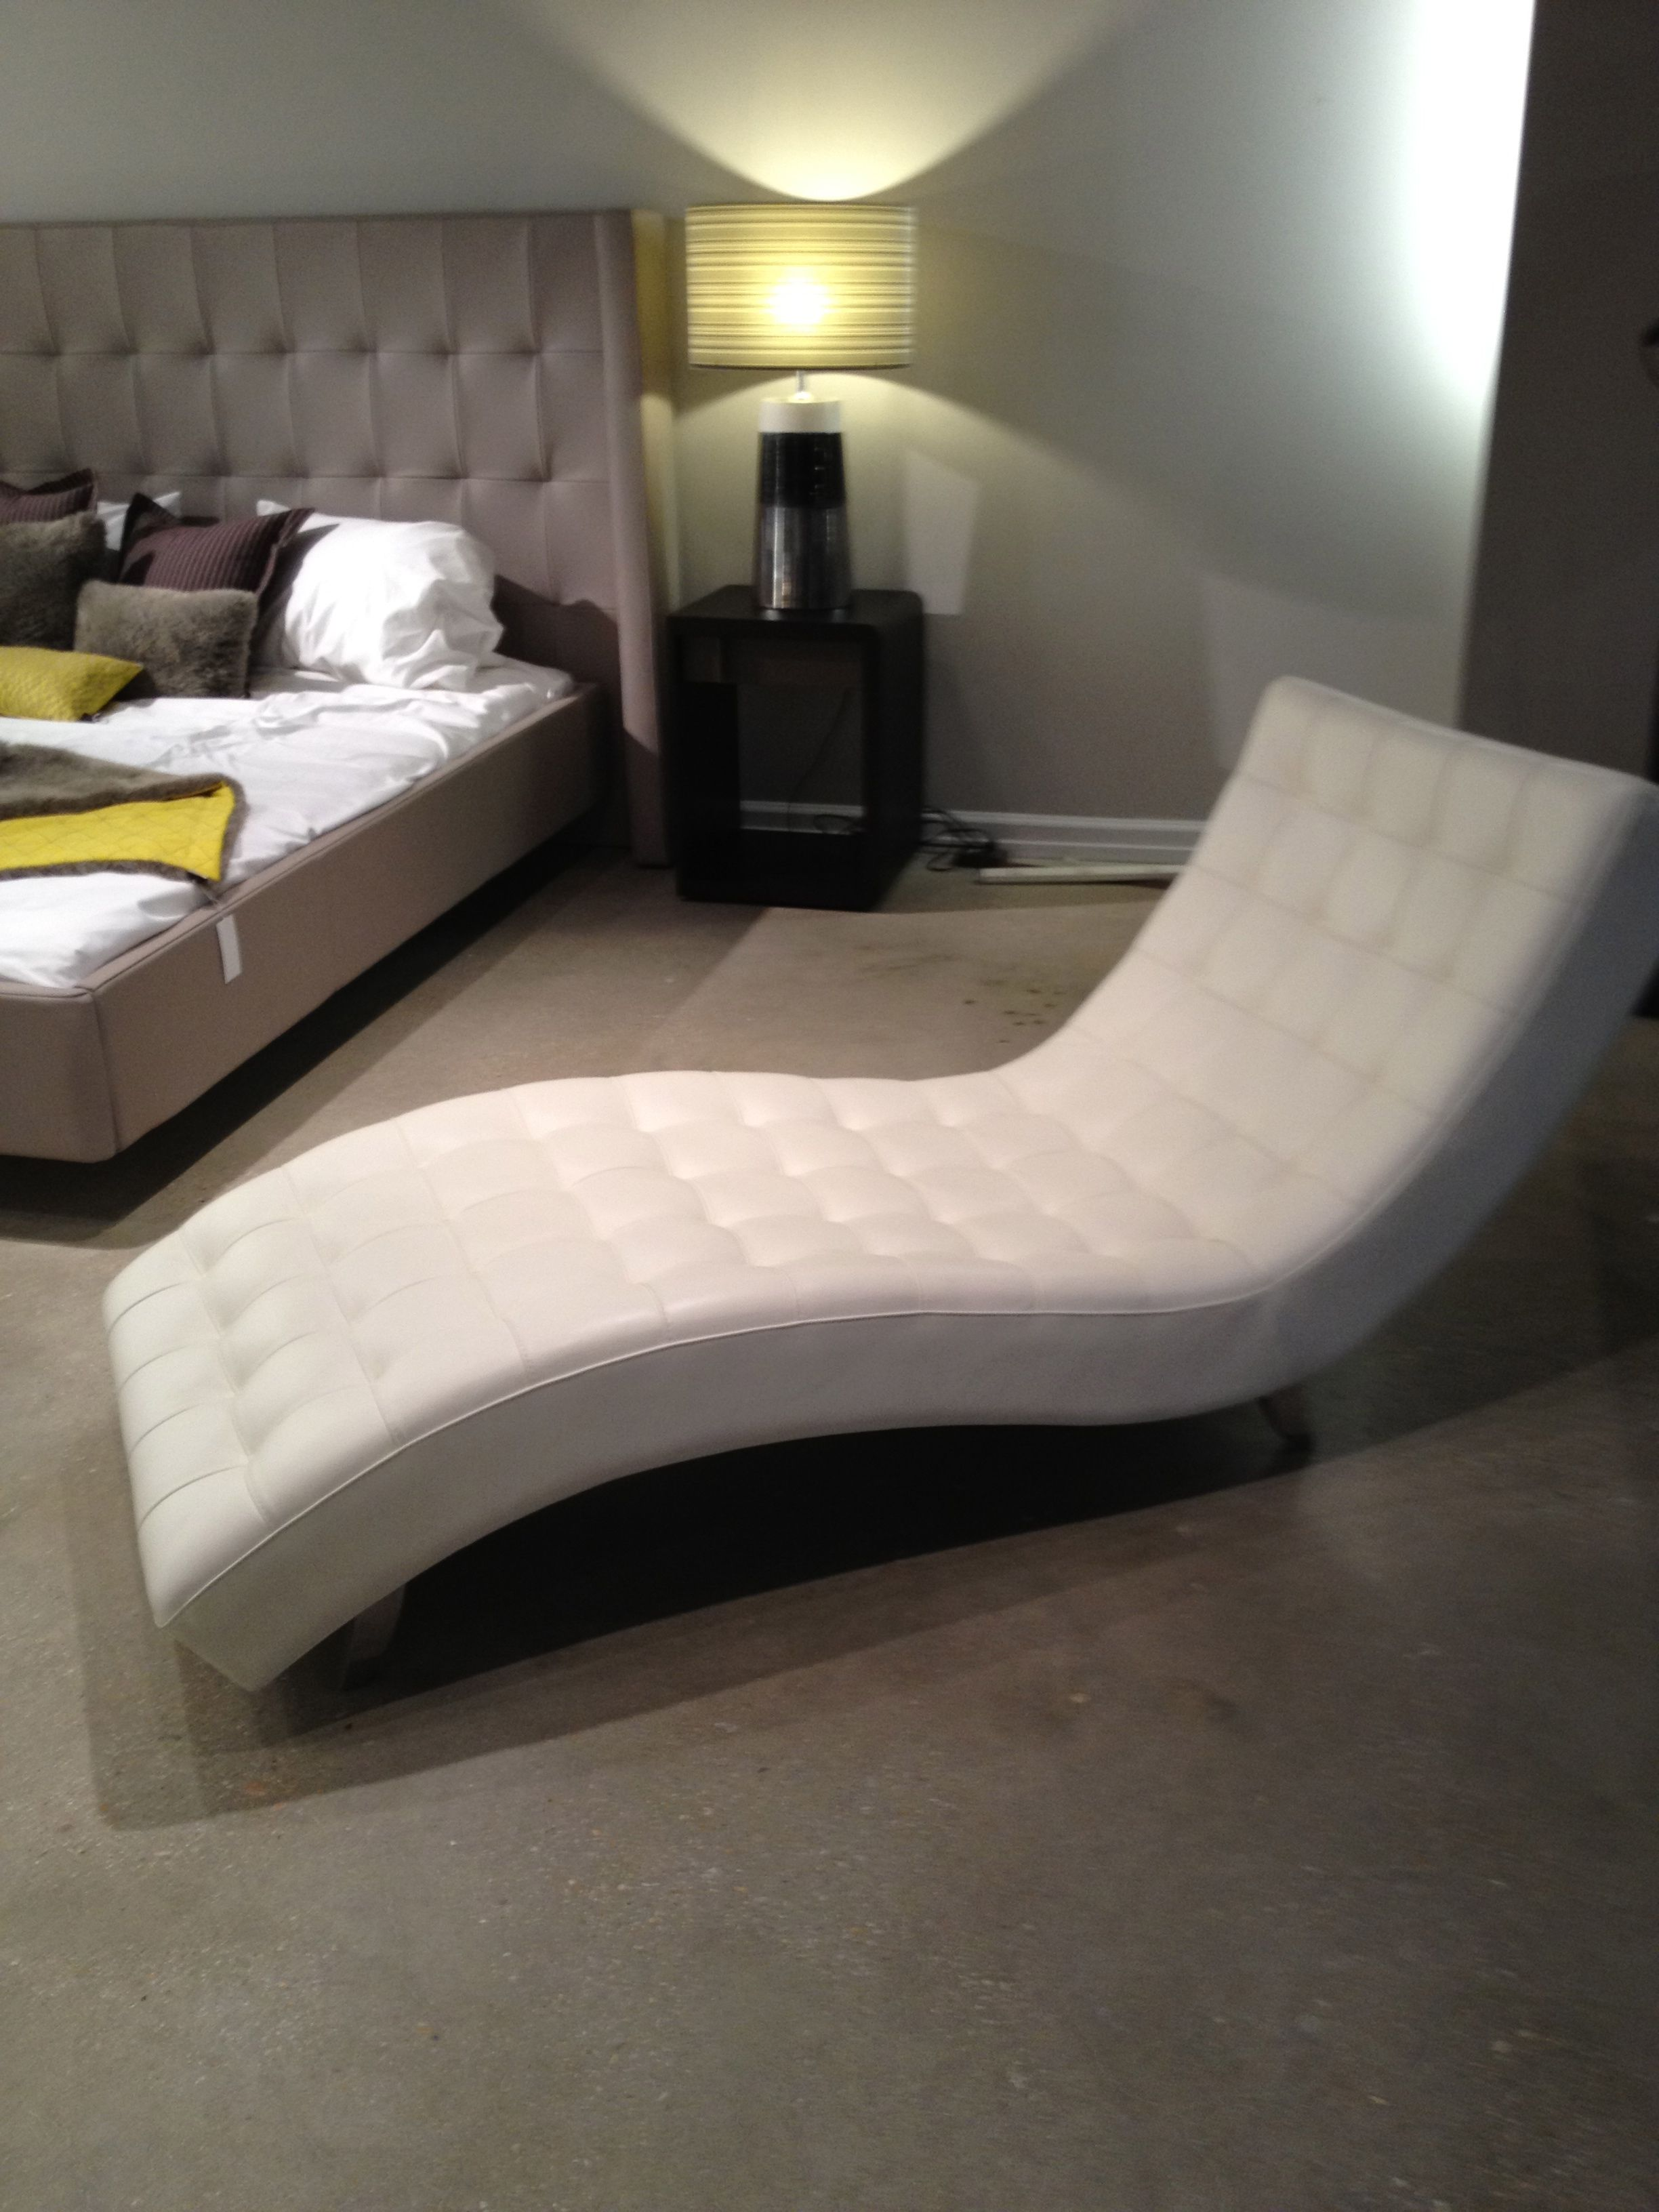 Lounge Chairs For Bedroom Chaise Lounge For Bedroom Home Design My Home